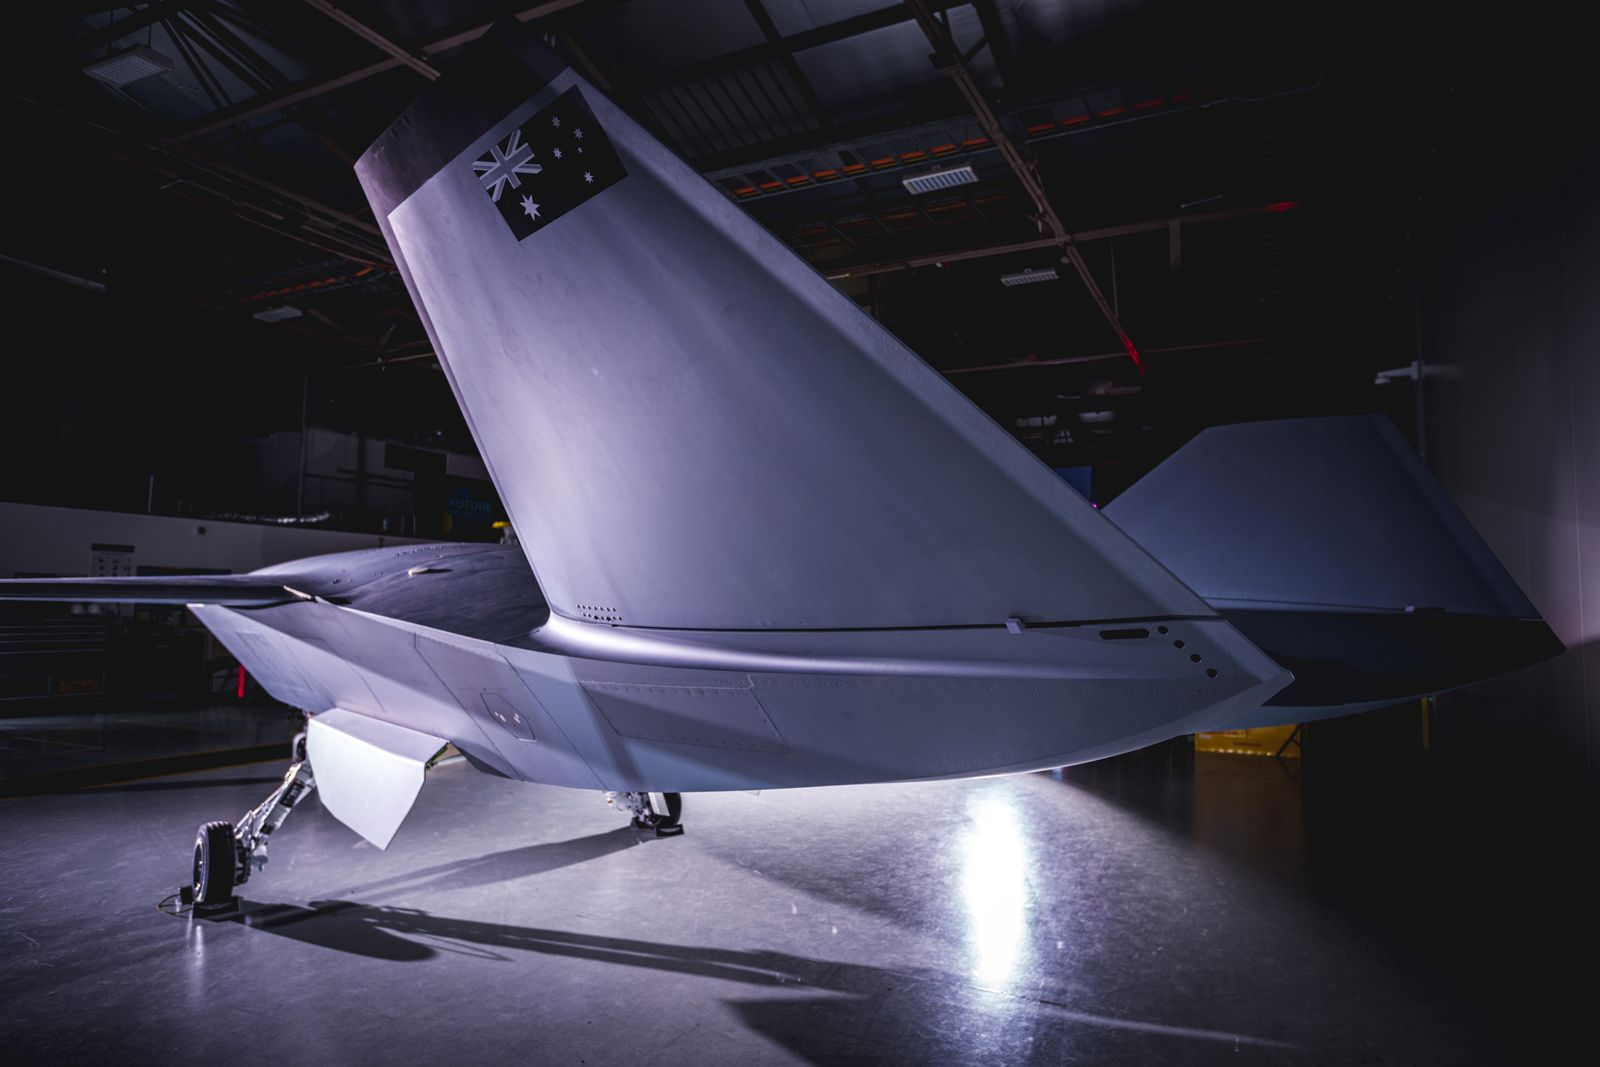 Boeing's unmanned Loyal Wingman aircraft is seen in this handout picture obtained on May 5, 2020 in an undisclosed location in Australia.